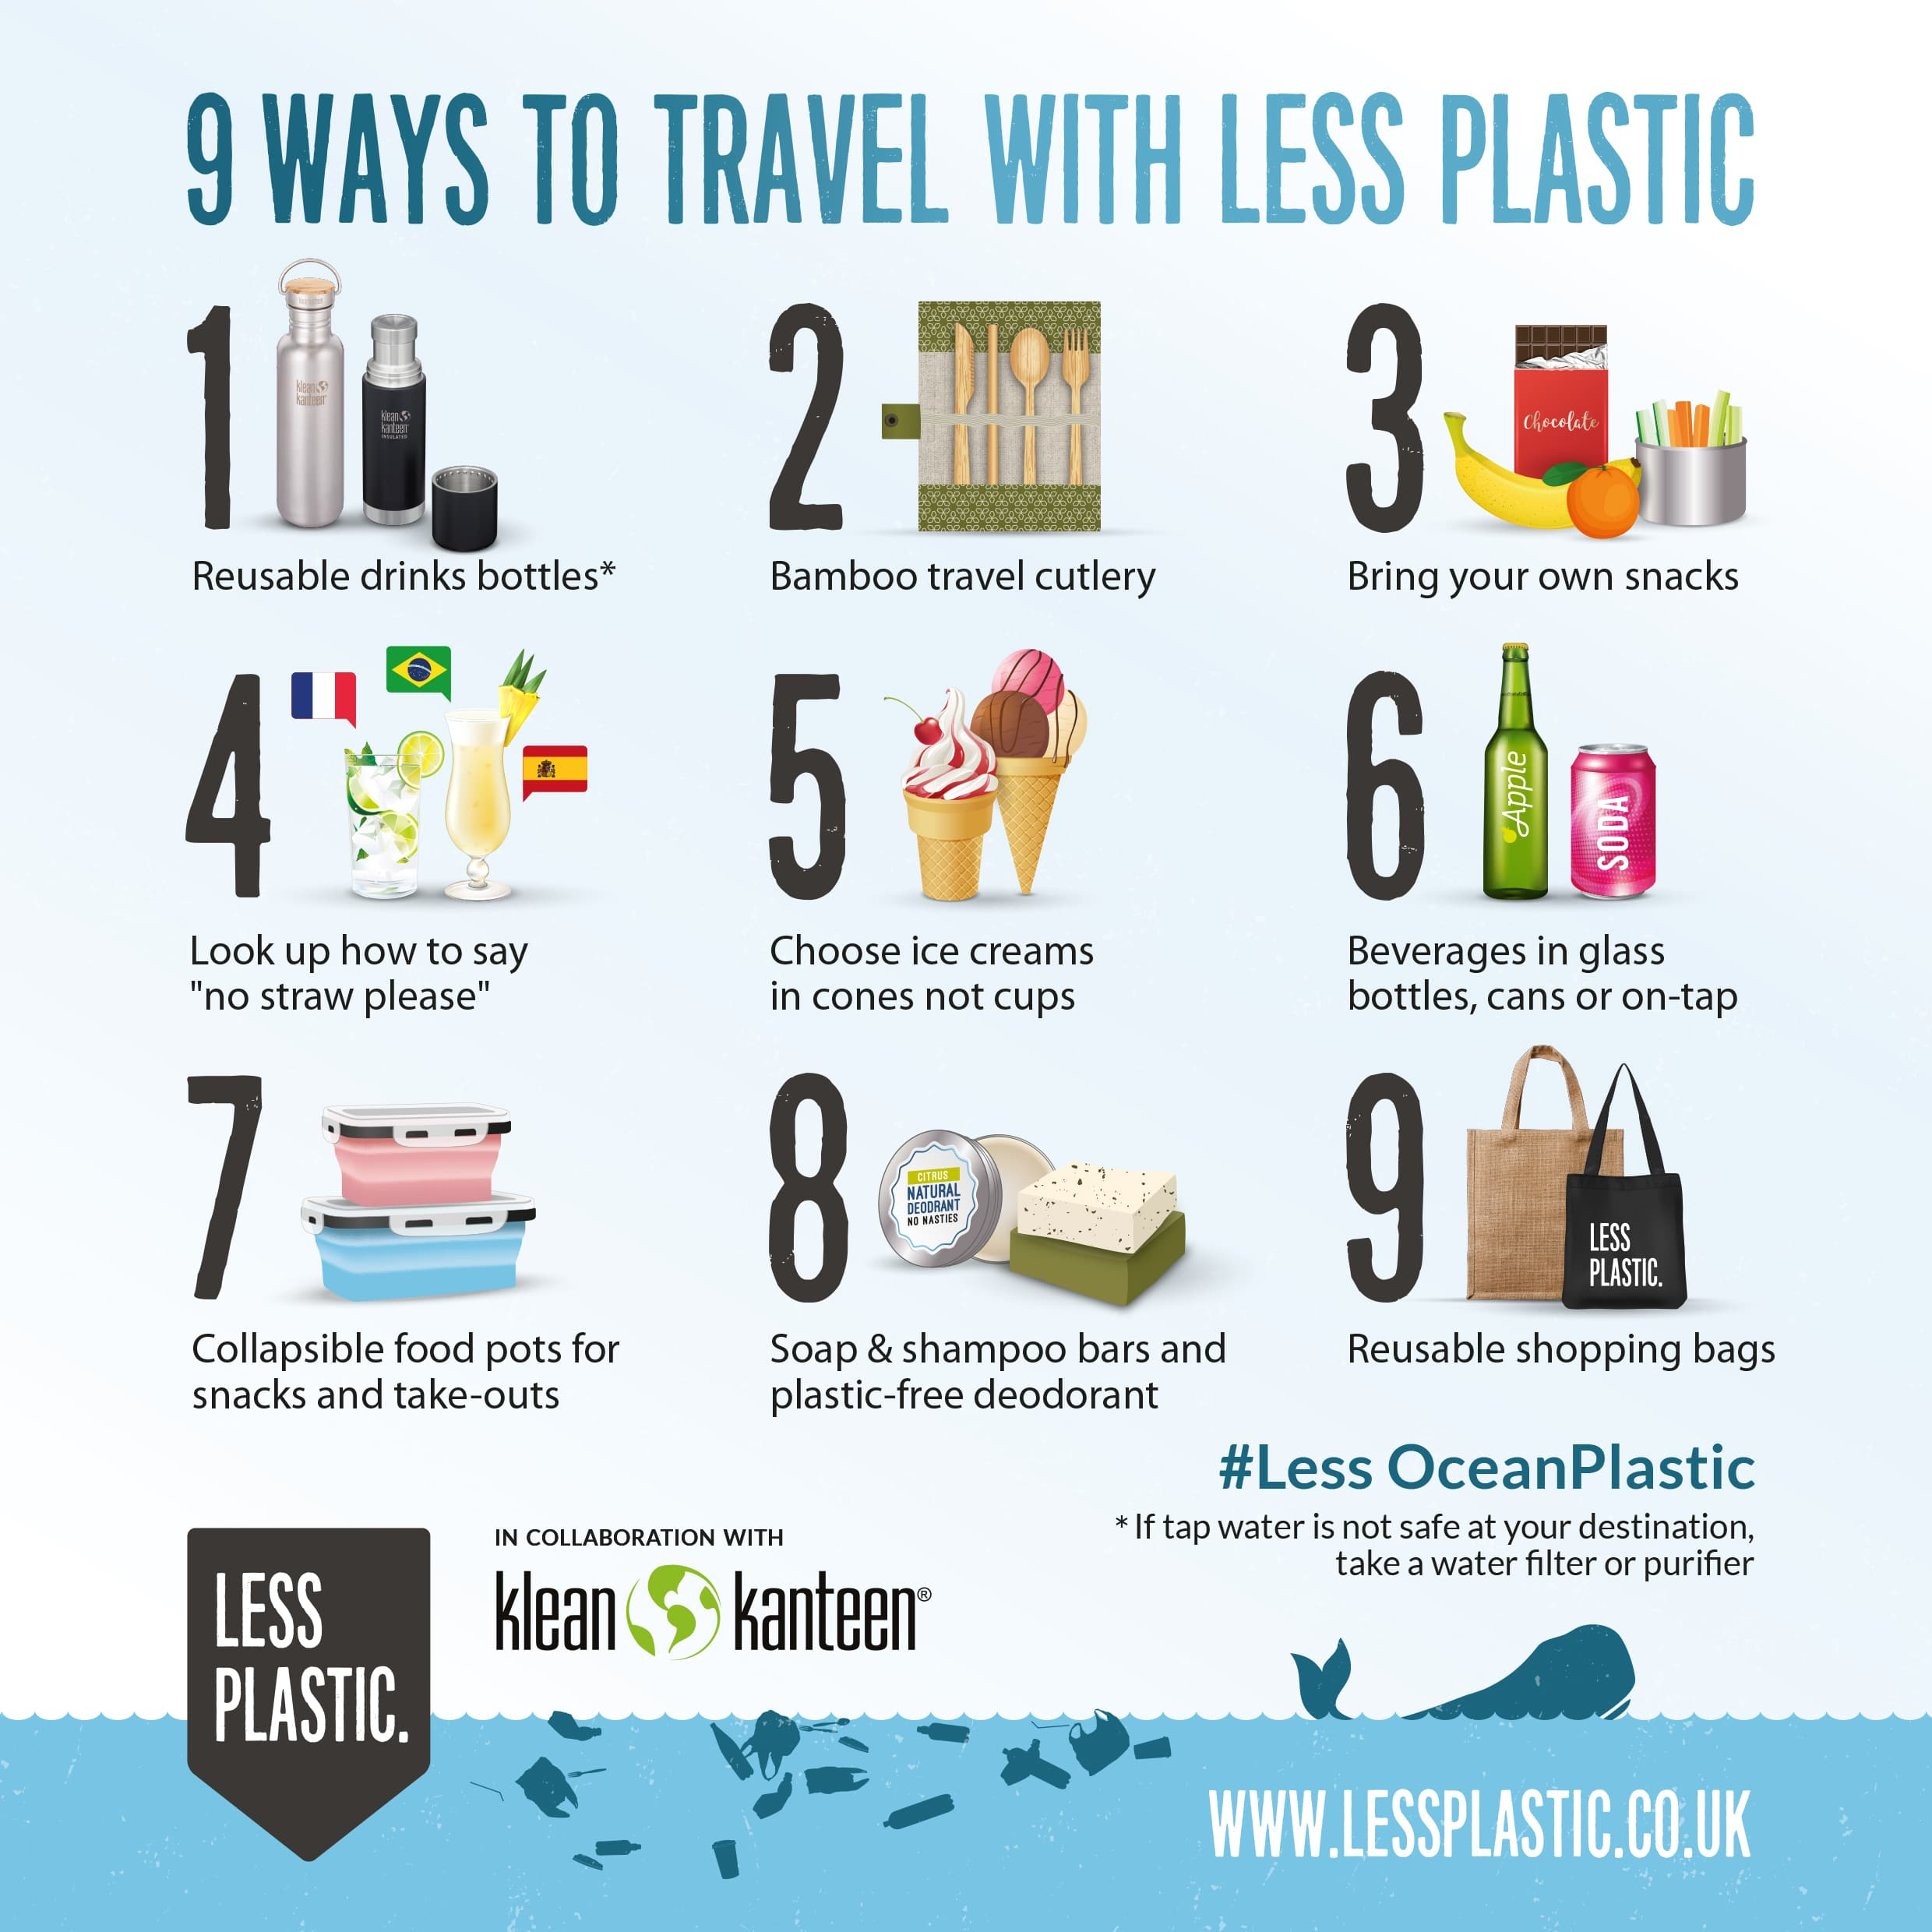 9 ways to travel with less plastic infographic